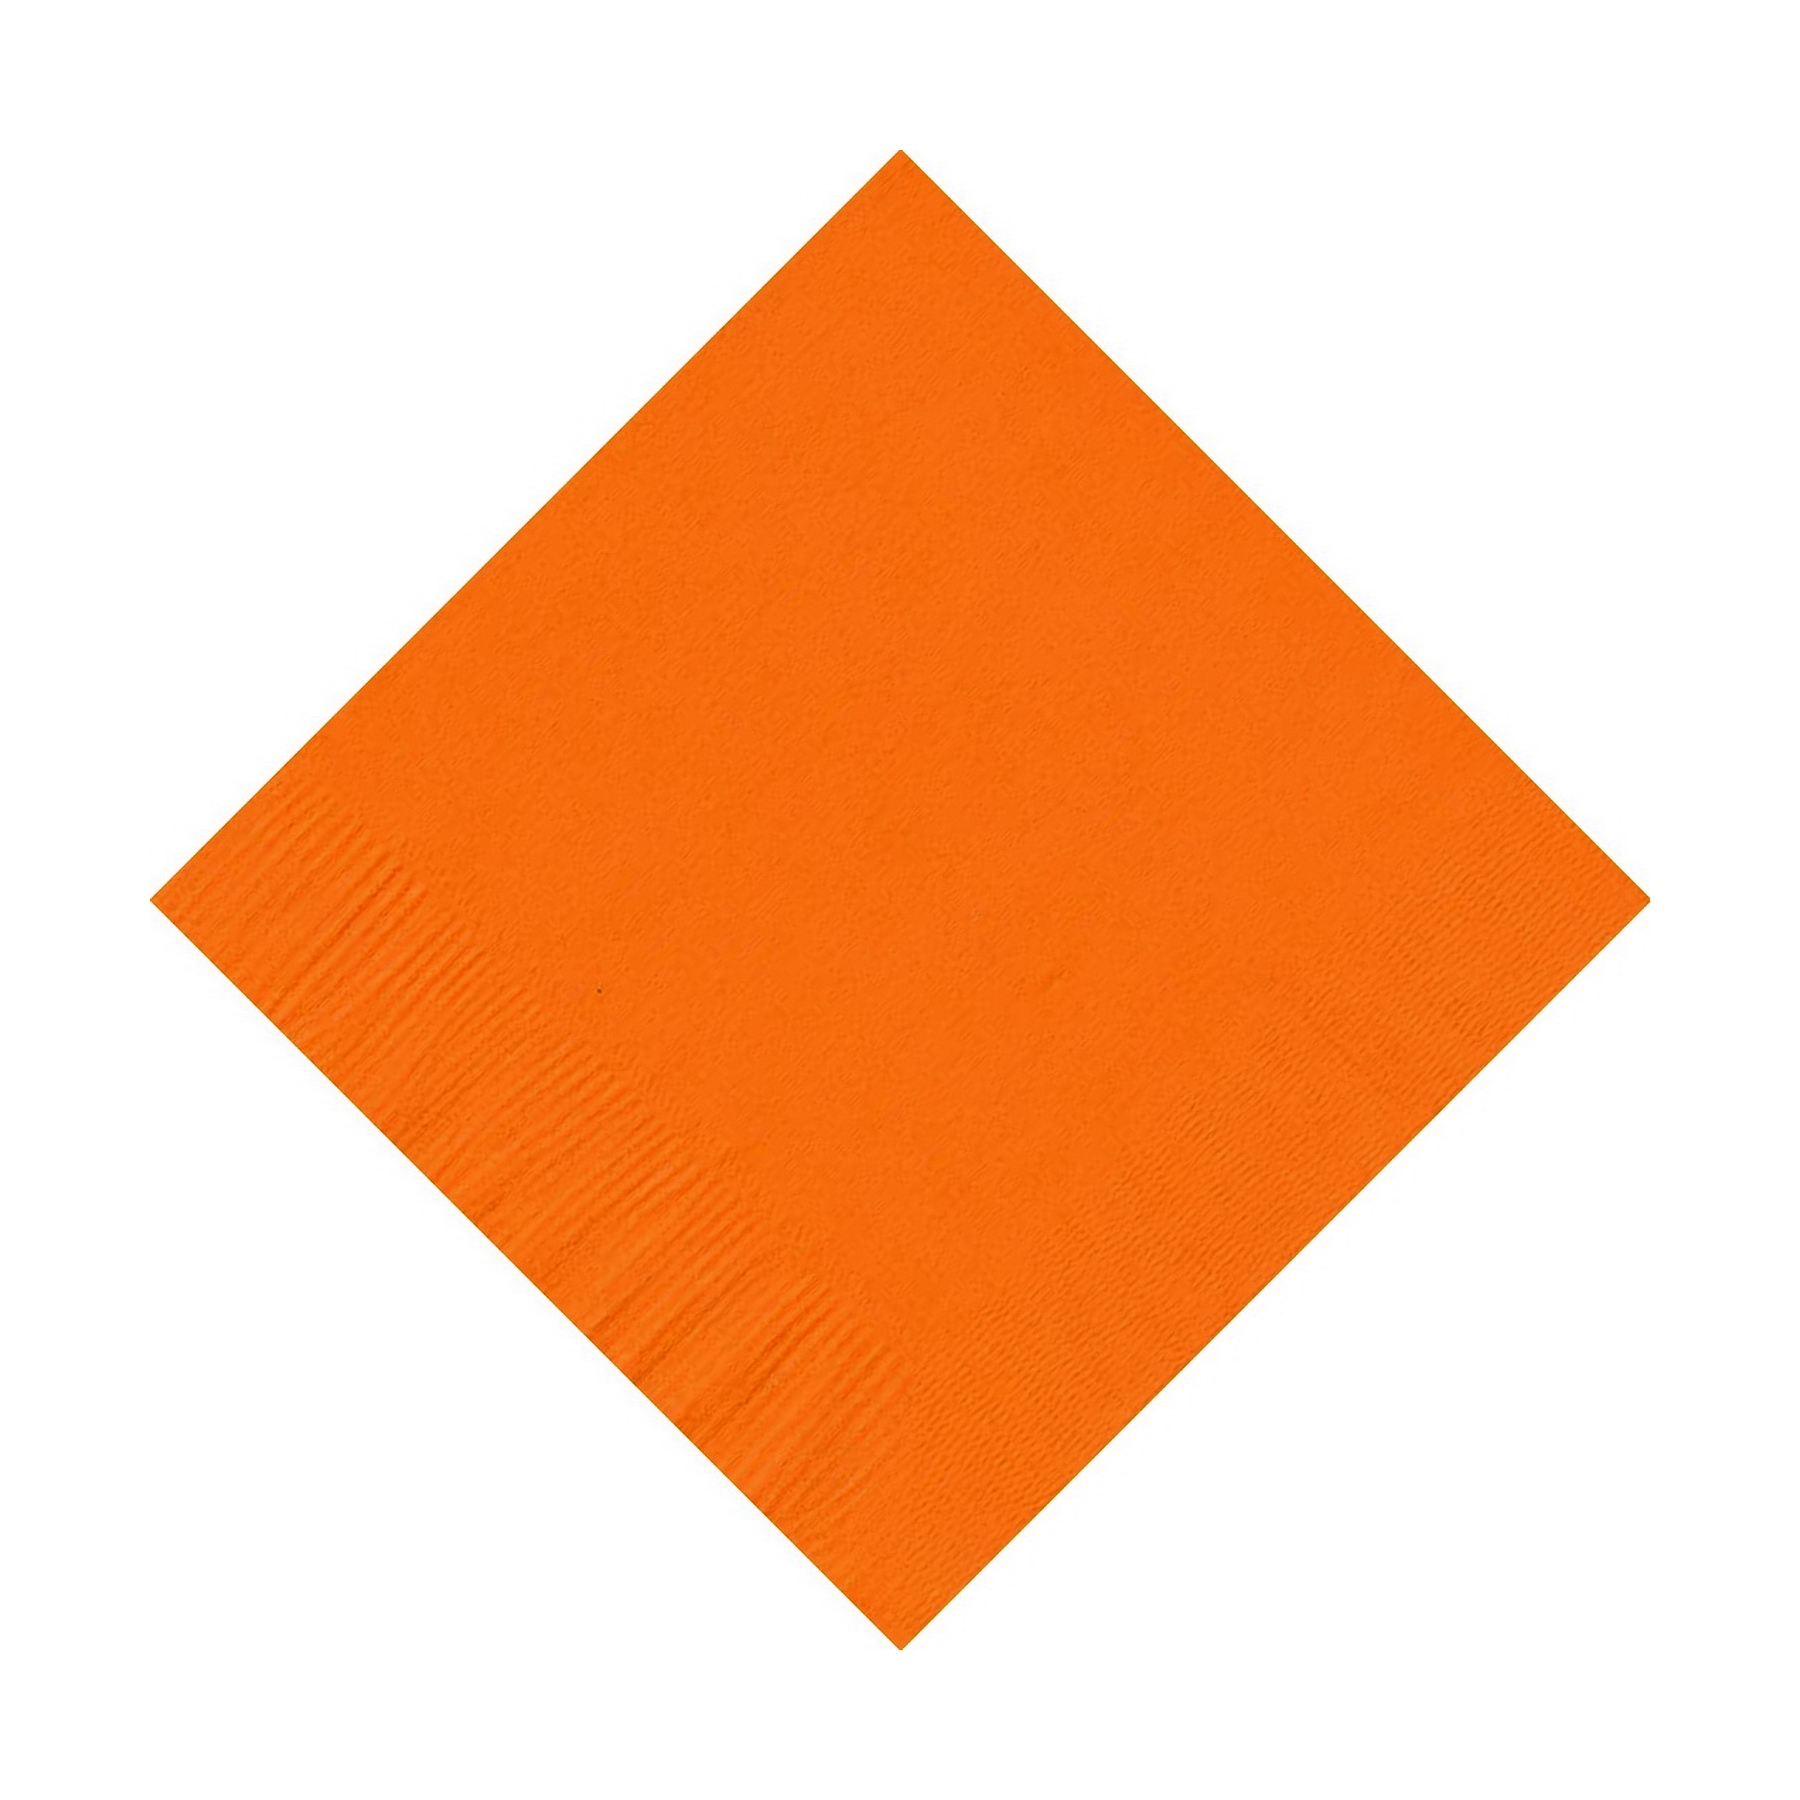 600 (12 Pks of 50) 2 Ply Plain Solid Colors Beverage Cocktail Napkins Paper Orange by CREATIVE CONVERTING